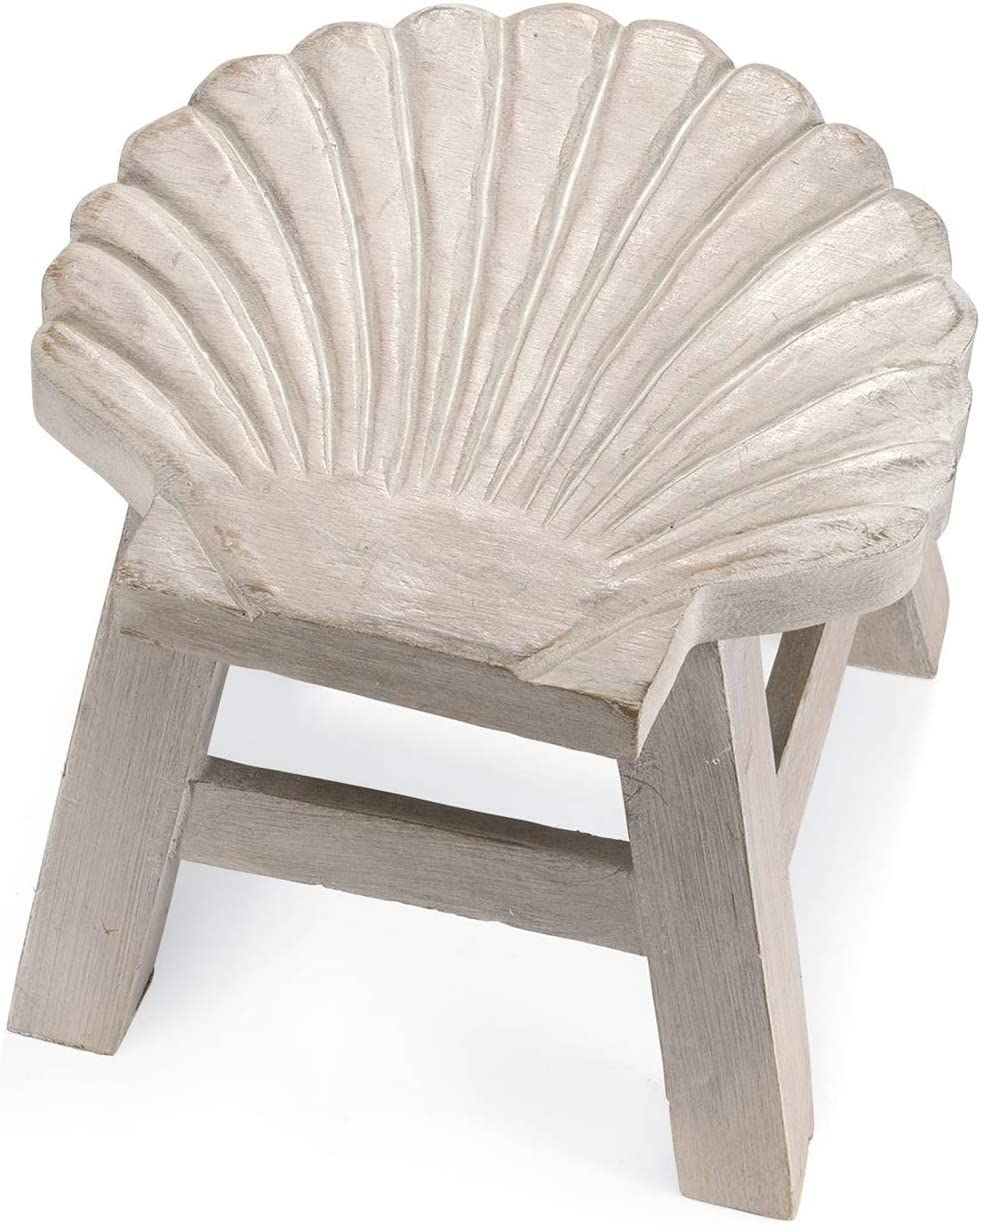 Scallop Shell Hand Carved Wooden Foot Stool Whitewash Finish